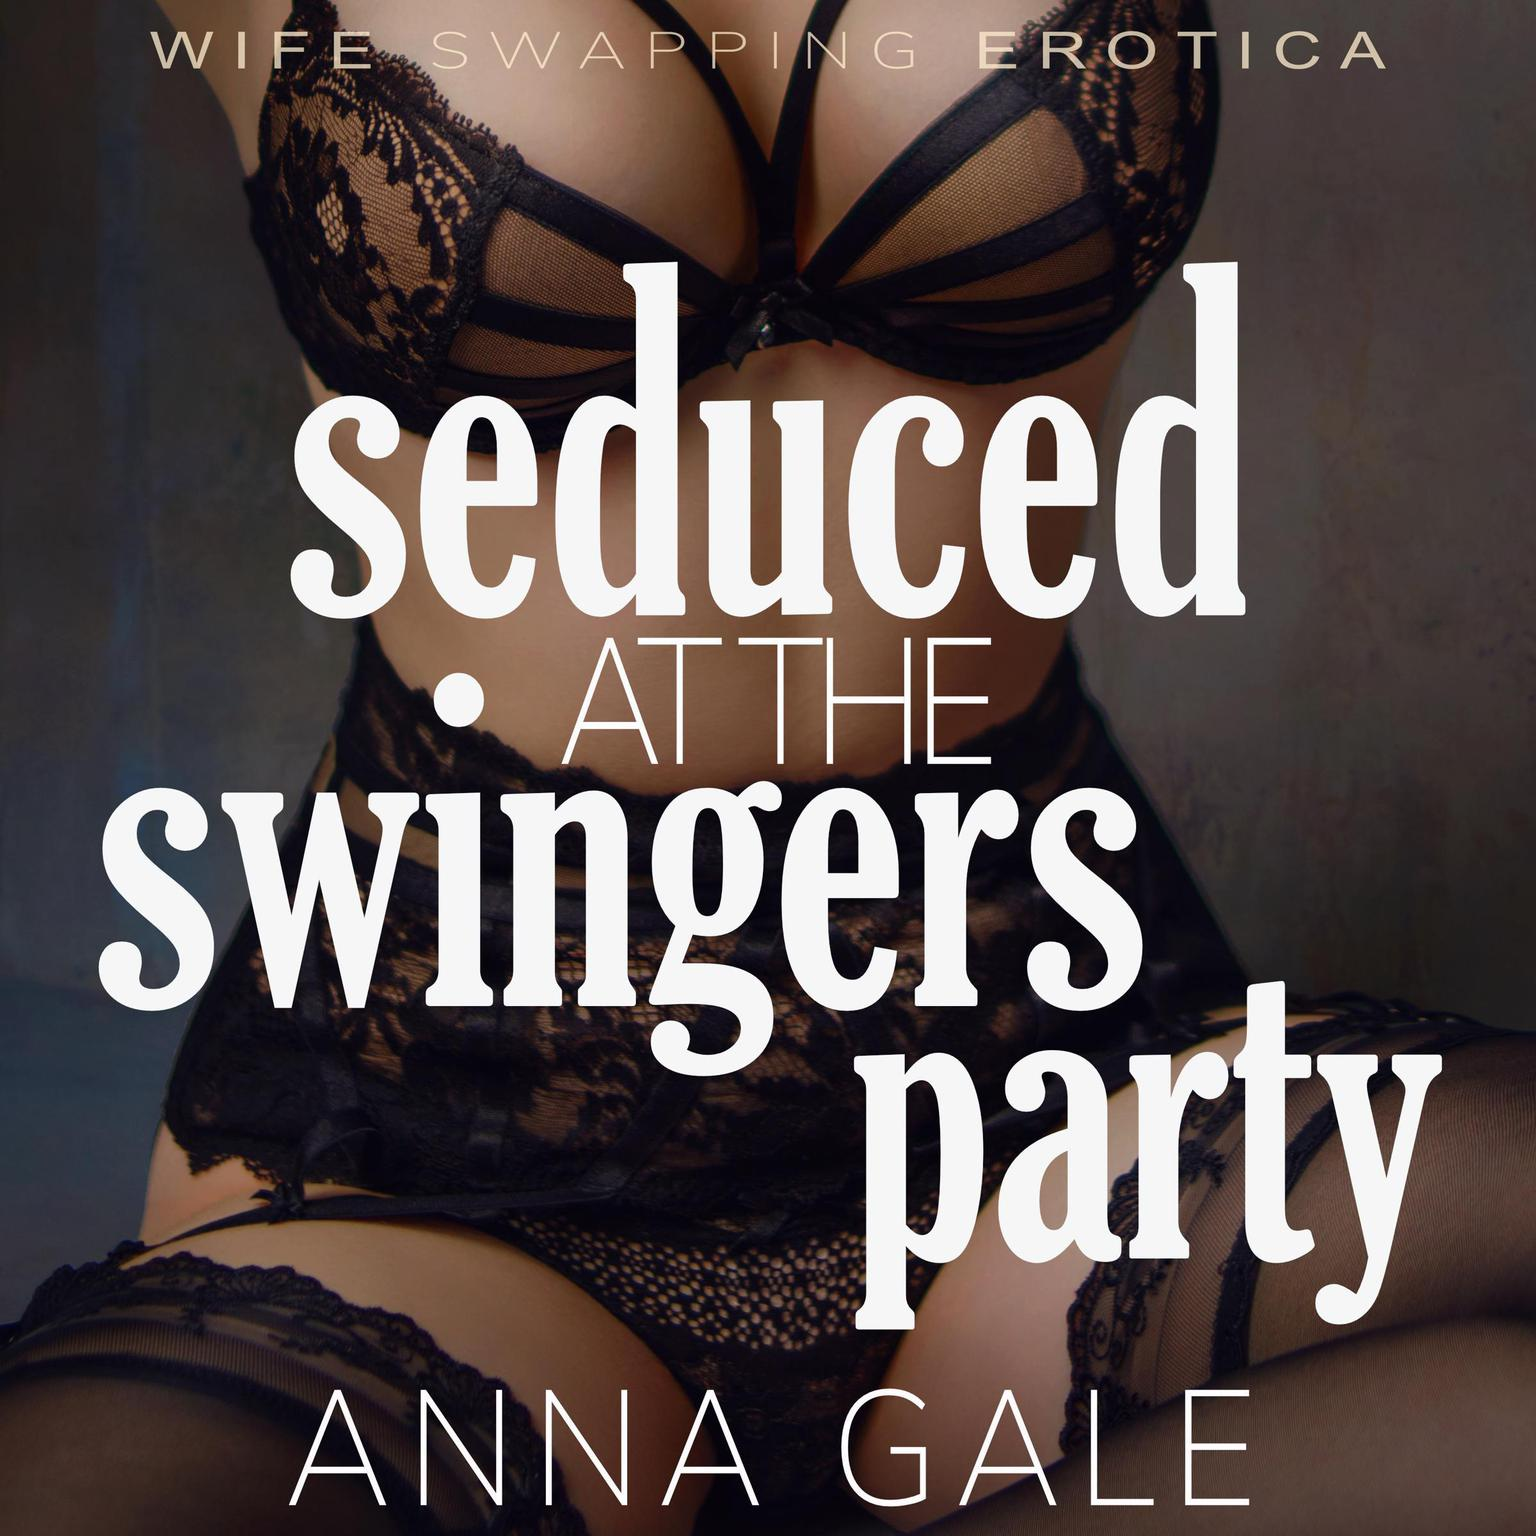 Seduced at the Swingers Party: Wife Swapping Erotica Audiobook, by Anna Gale